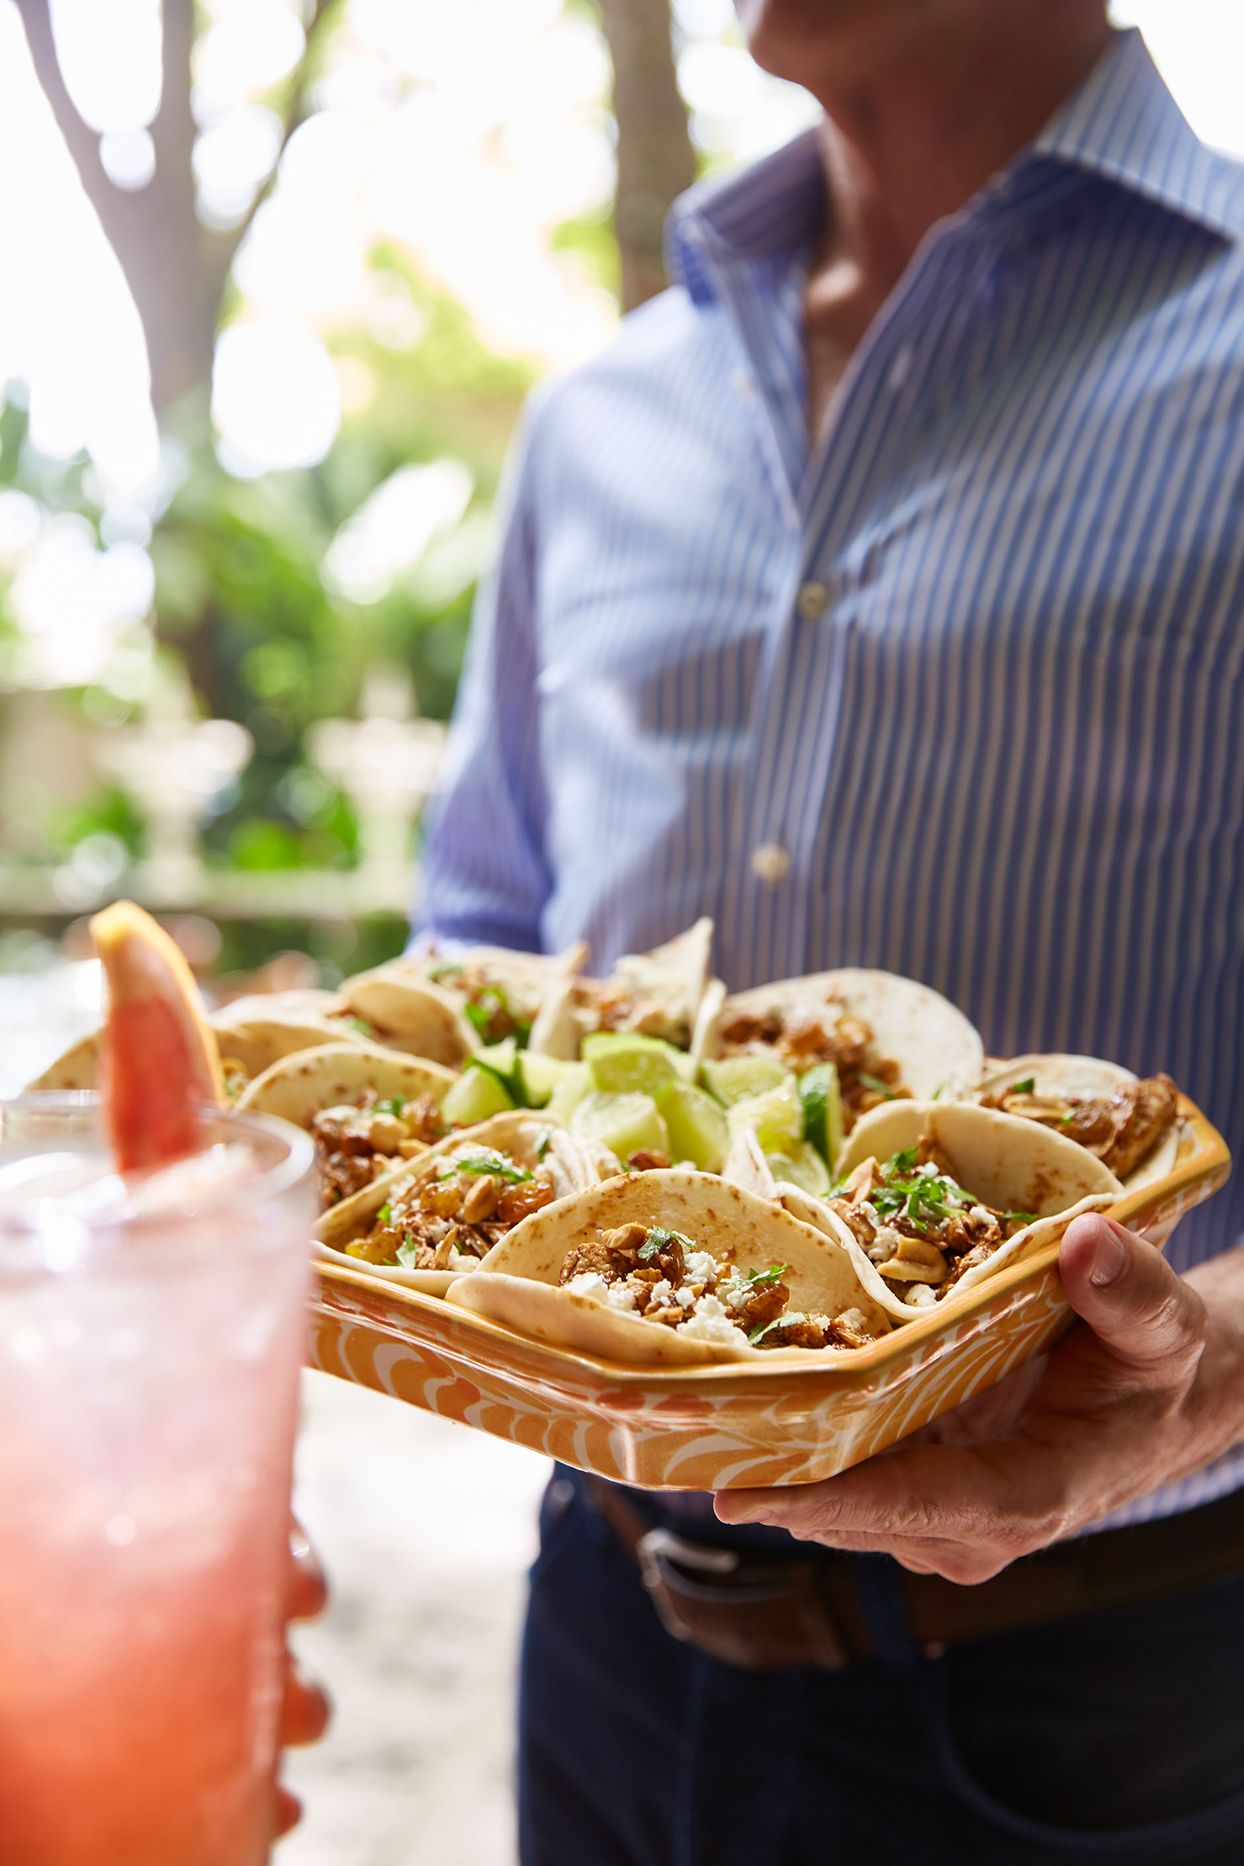 Person holding tray of tacos